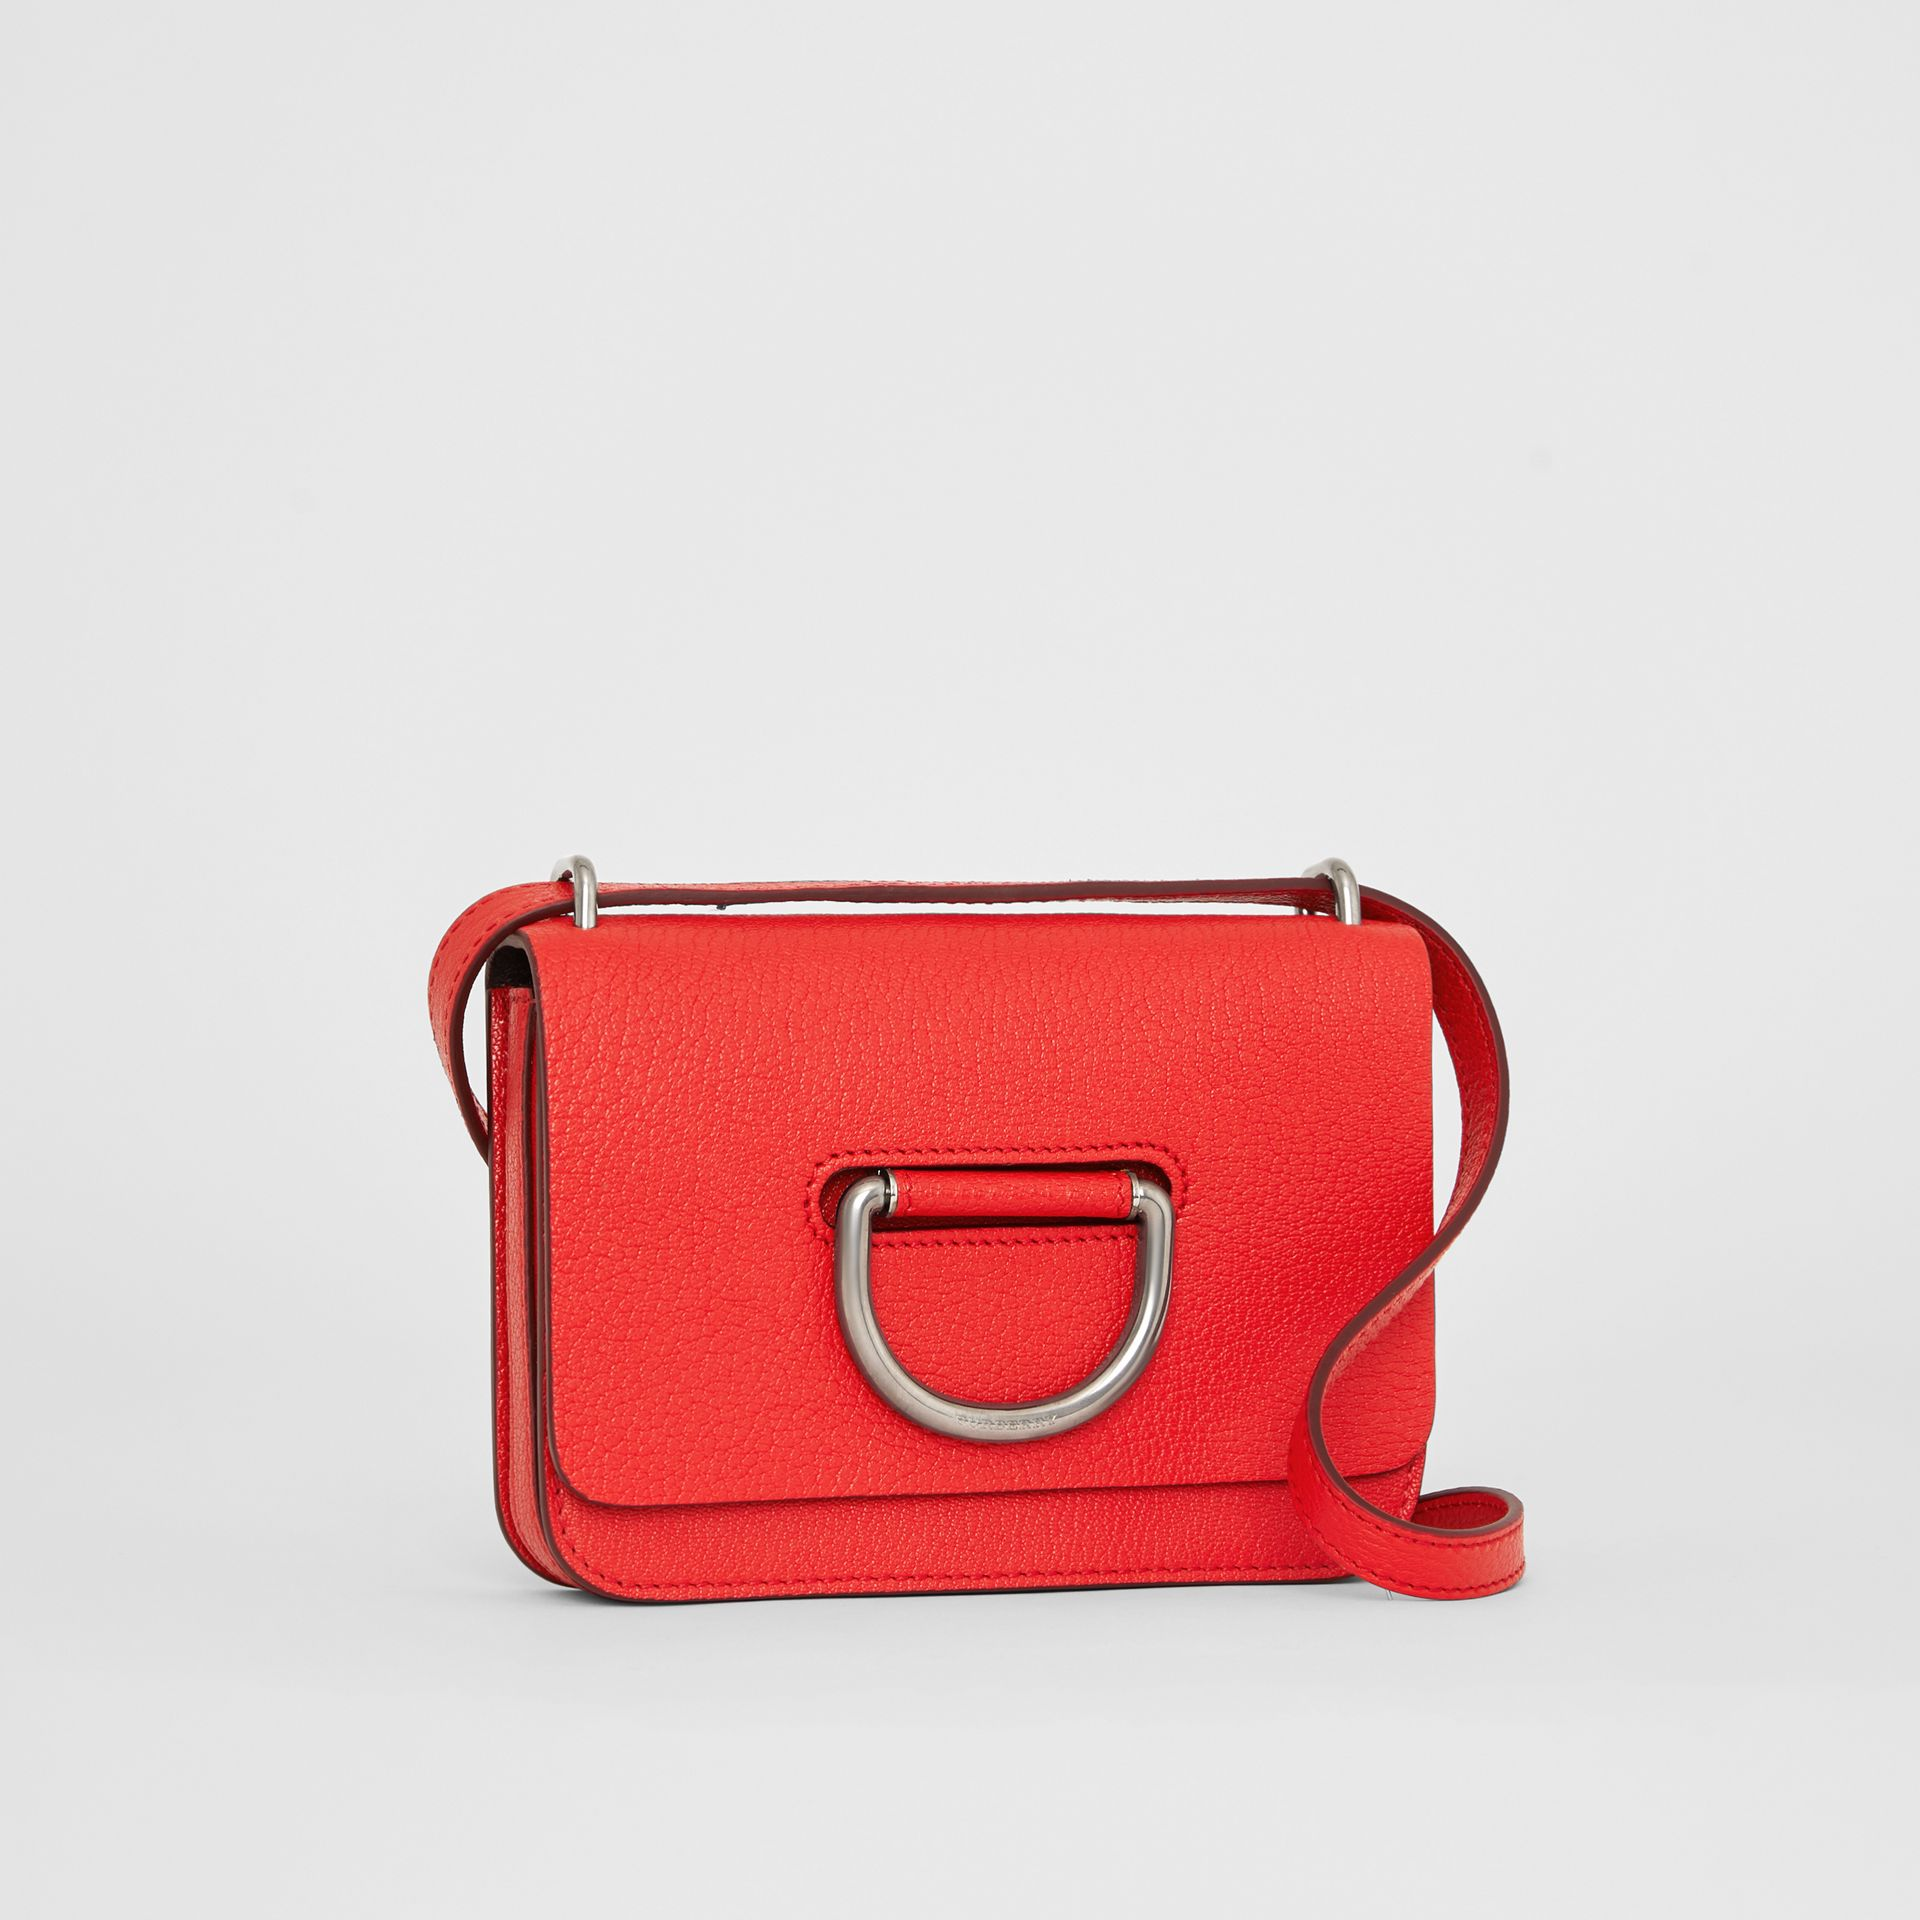 Mini sac The D-ring en cuir (Rouge Vif) - Femme | Burberry Canada - photo de la galerie 6